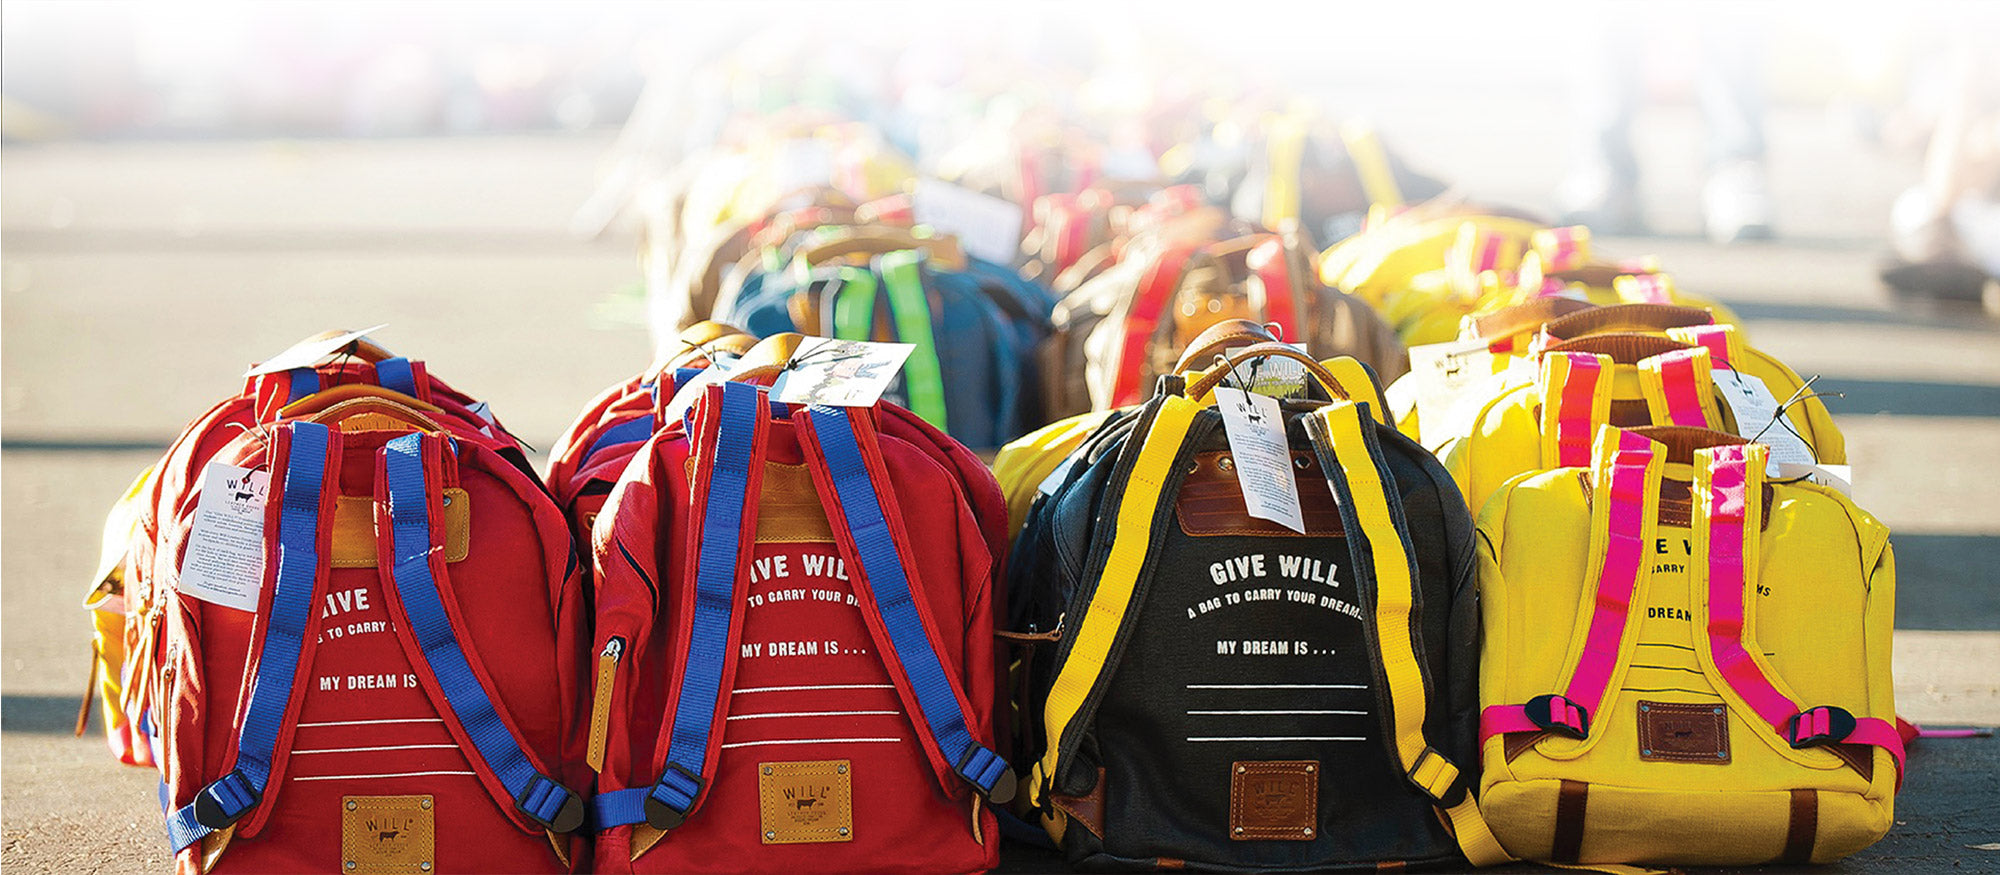 Give Will Backpacks